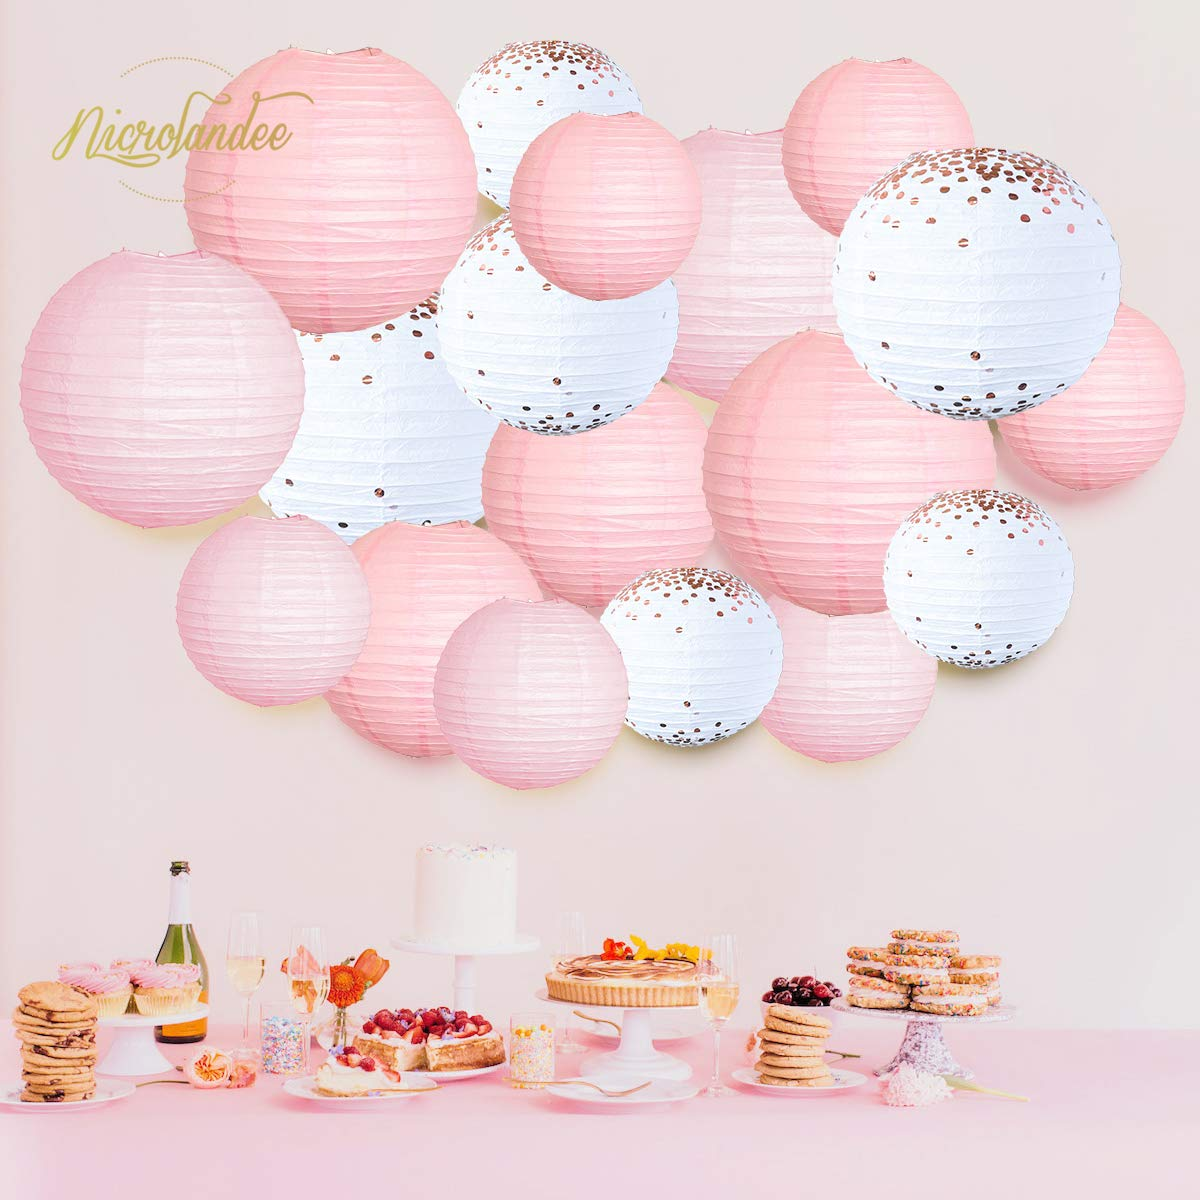 NICROLANDEE 18pcs Pink Paper Lanterns Decorations Rose Gold Copper Foil White Round Hanging Lantern Lamp Garland for Wedding Valentine's Day Bridal Shower Girls Baby Shower Birthday Indoor Outdoor by NICROLANDEE (Image #6)